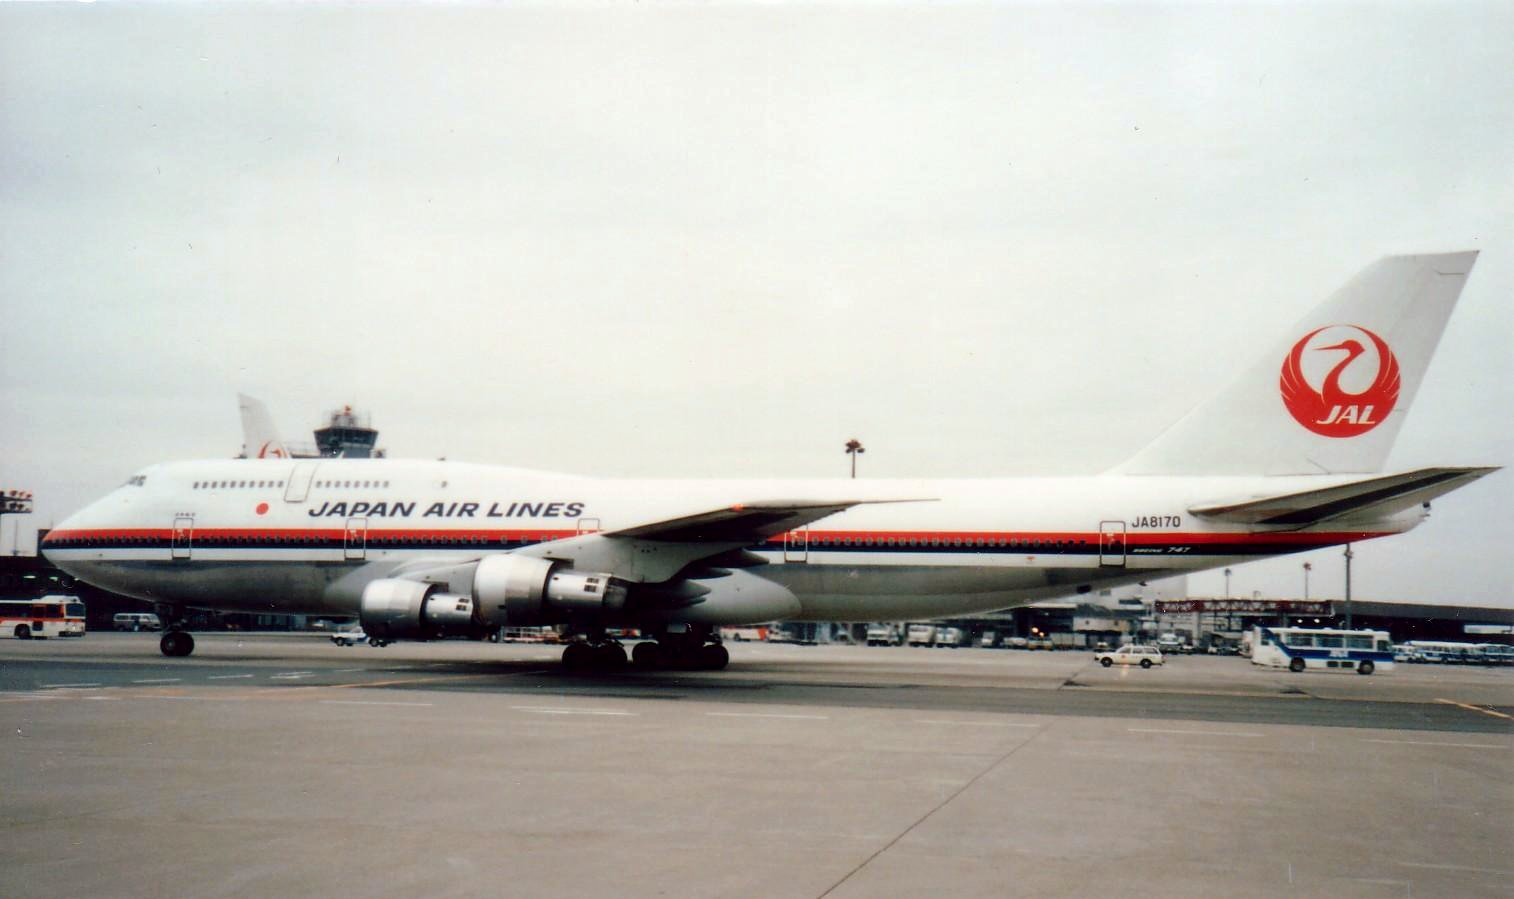 A Boeing 747-100SR aircraft taxiing on the tarmac